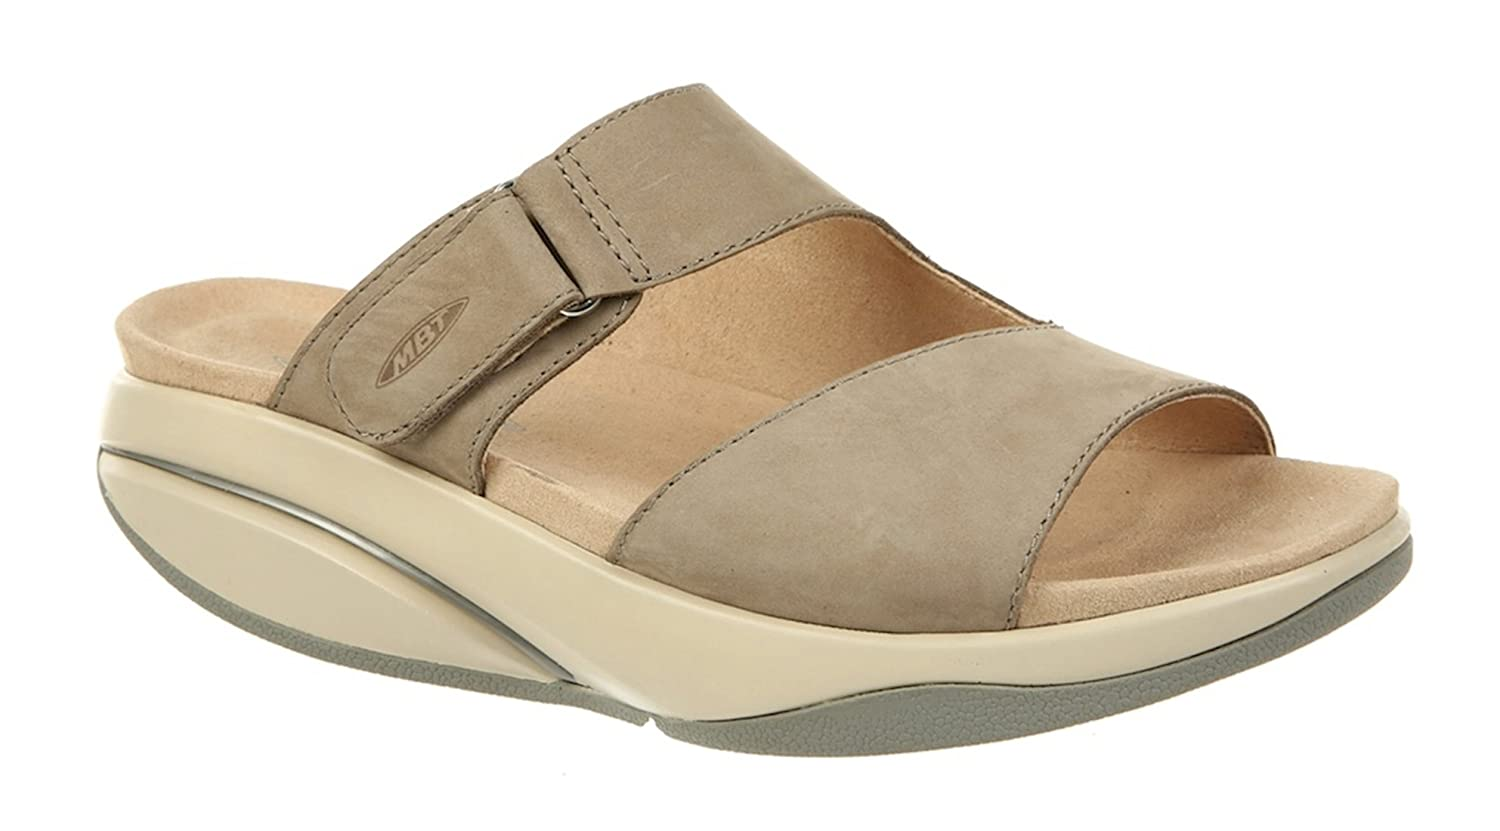 MBT Shoes Women's Tabia Sandal Leather Velcro B07B8GBZZM 9 B(M) US Woman|Taupe/Grey